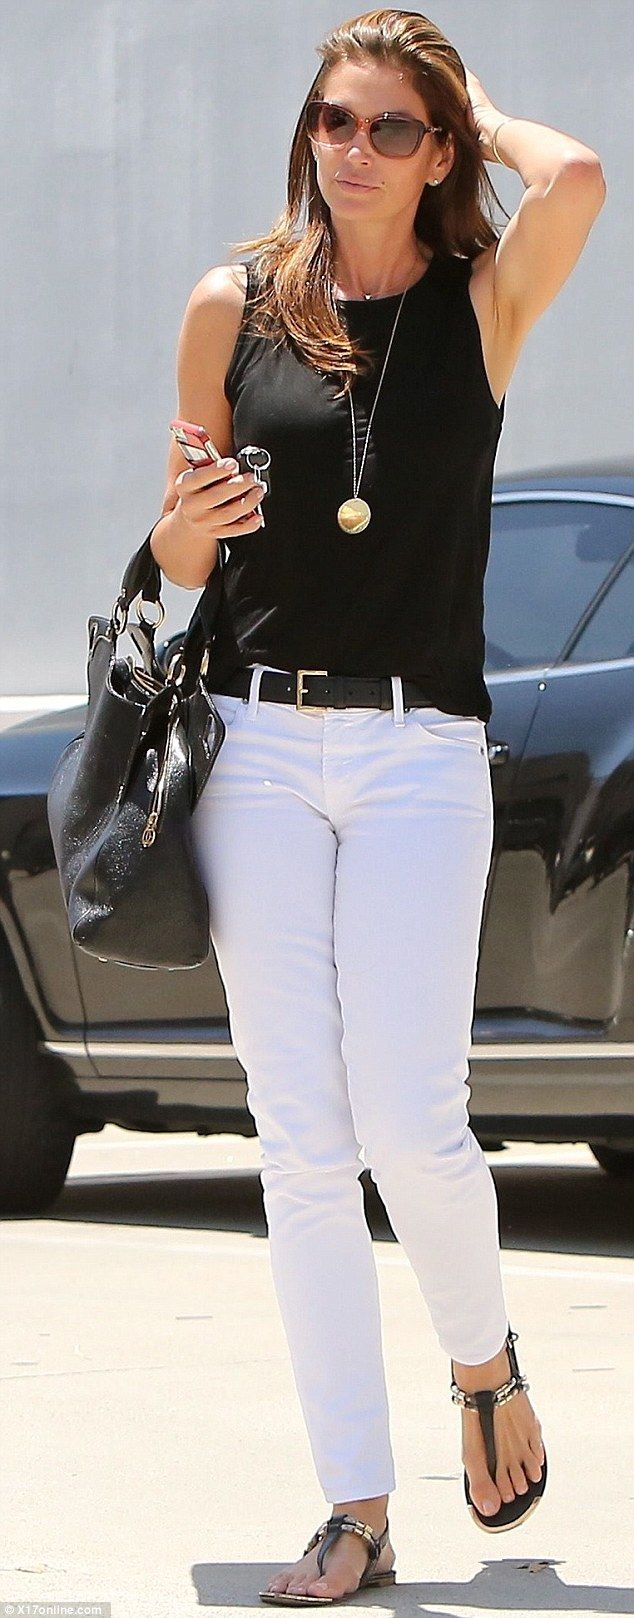 Effortlessly chic: Supermodel Cindy Crawford, 49, looks incredible in white jeans